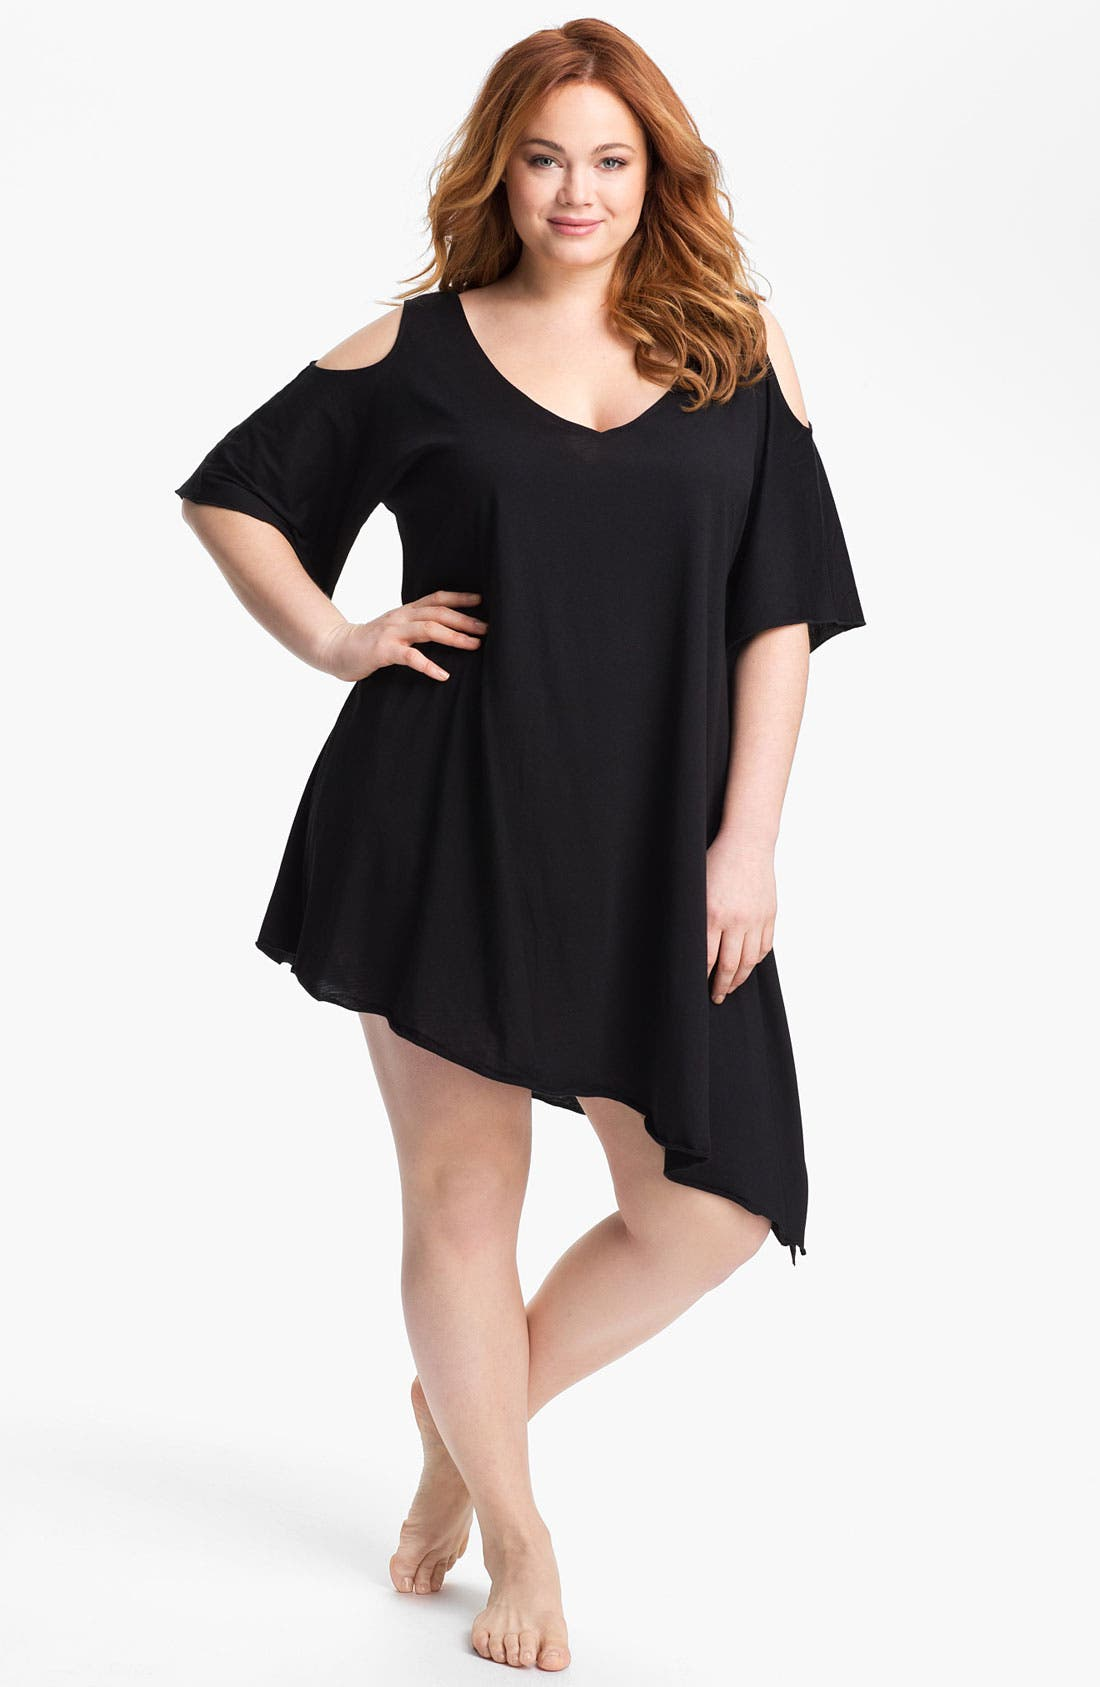 Alternate Image 1 Selected - Becca Etc. 'Sanctuary' Cover-Up (Plus Size)